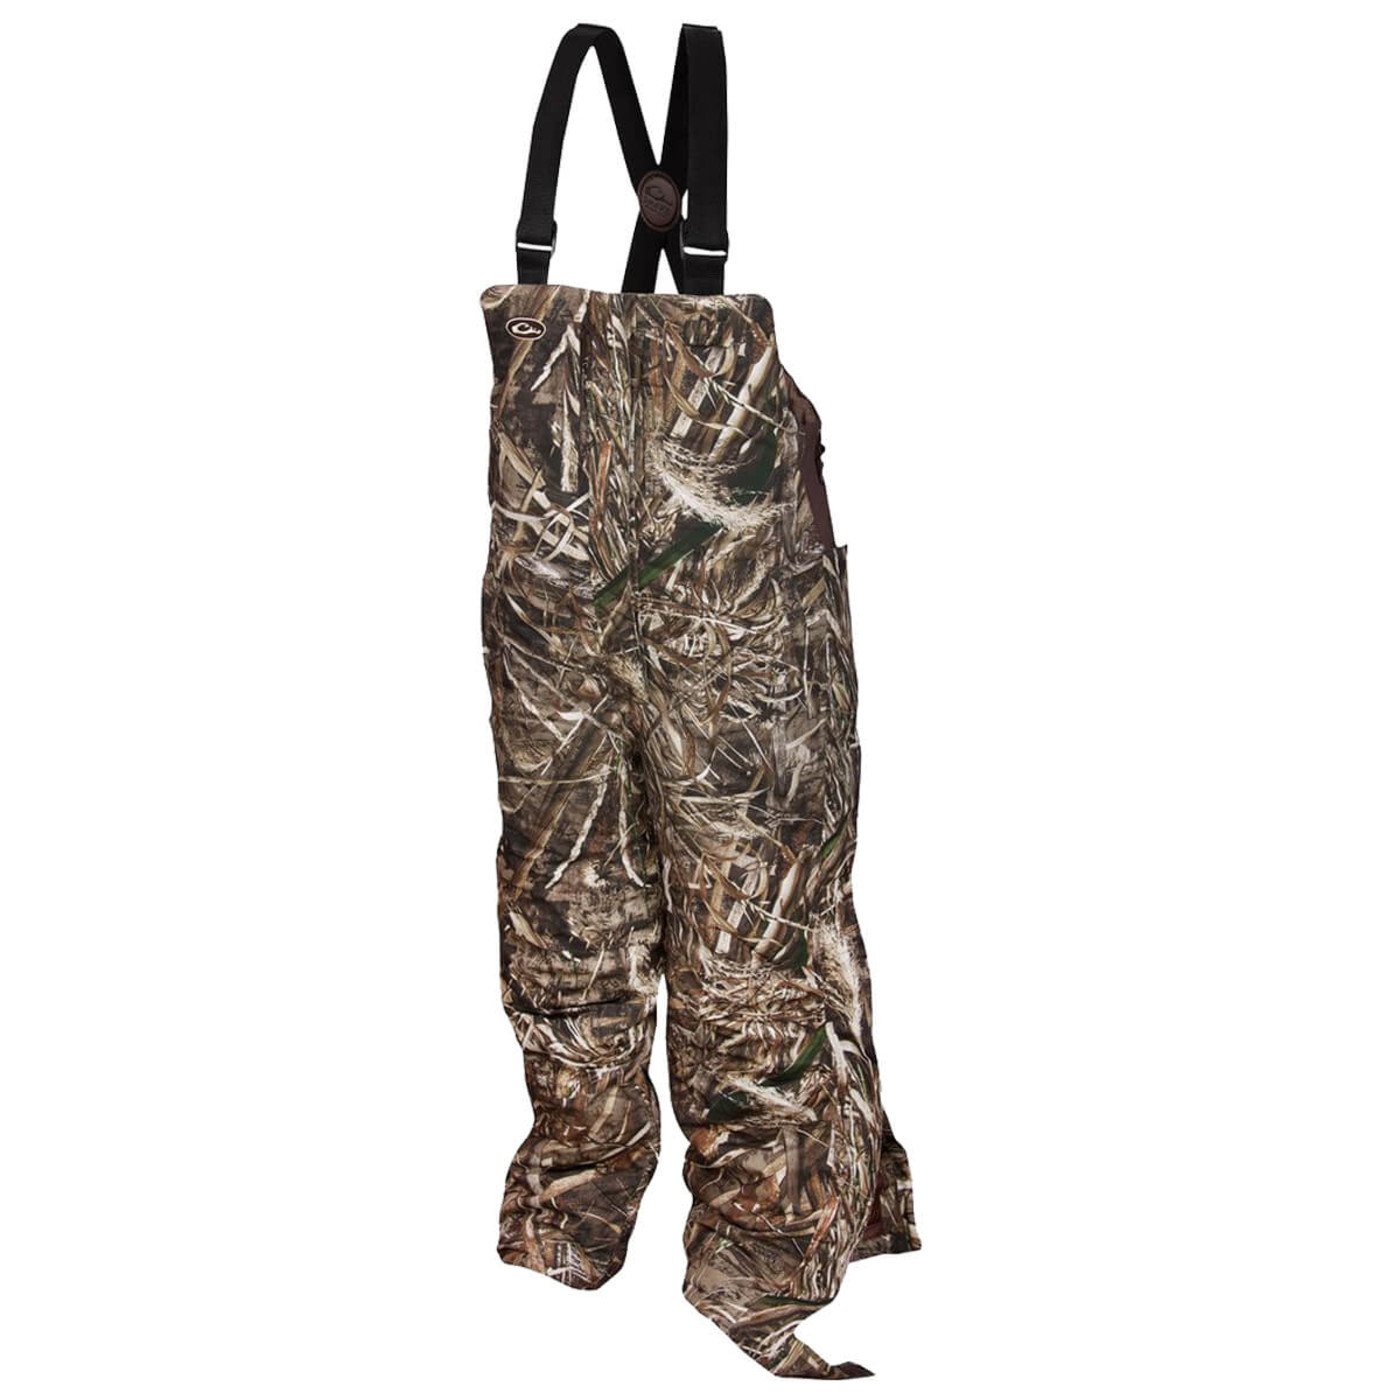 Drake Women's LST Insulated Hunting Bib in Realtree Max 5 Color